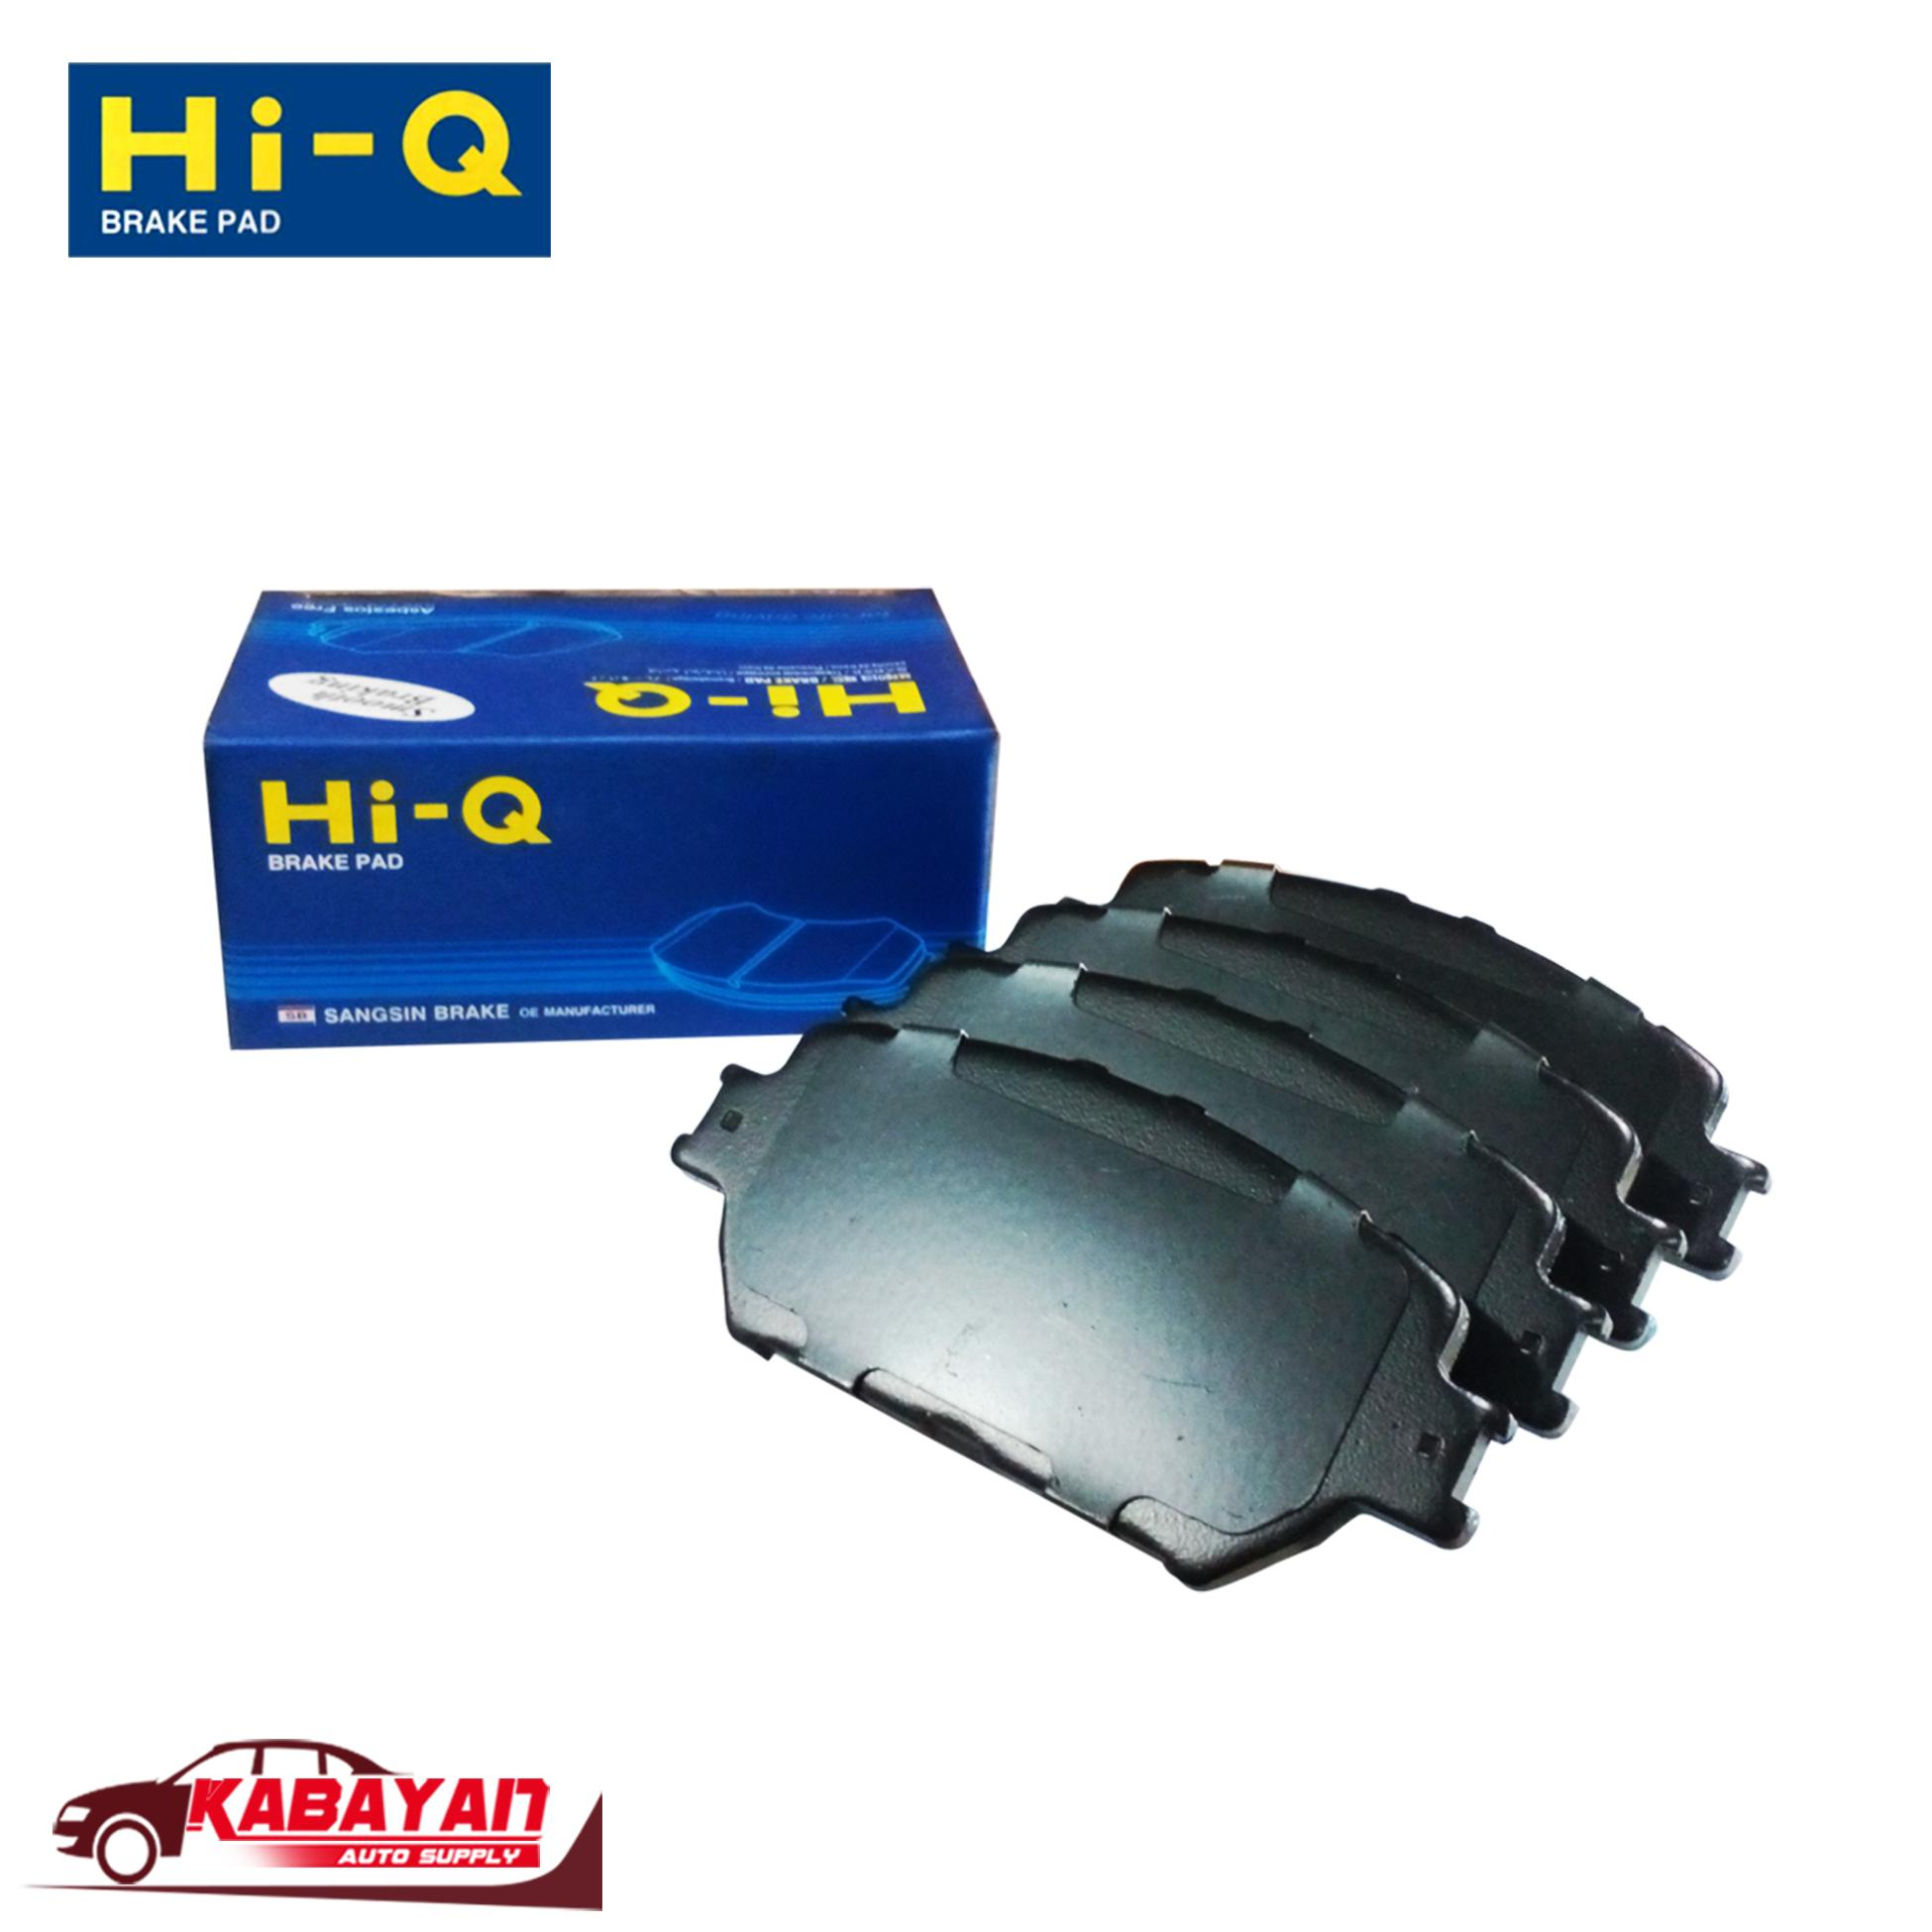 Car Brake Pads for sale - Auto Brake Pads online brands, prices